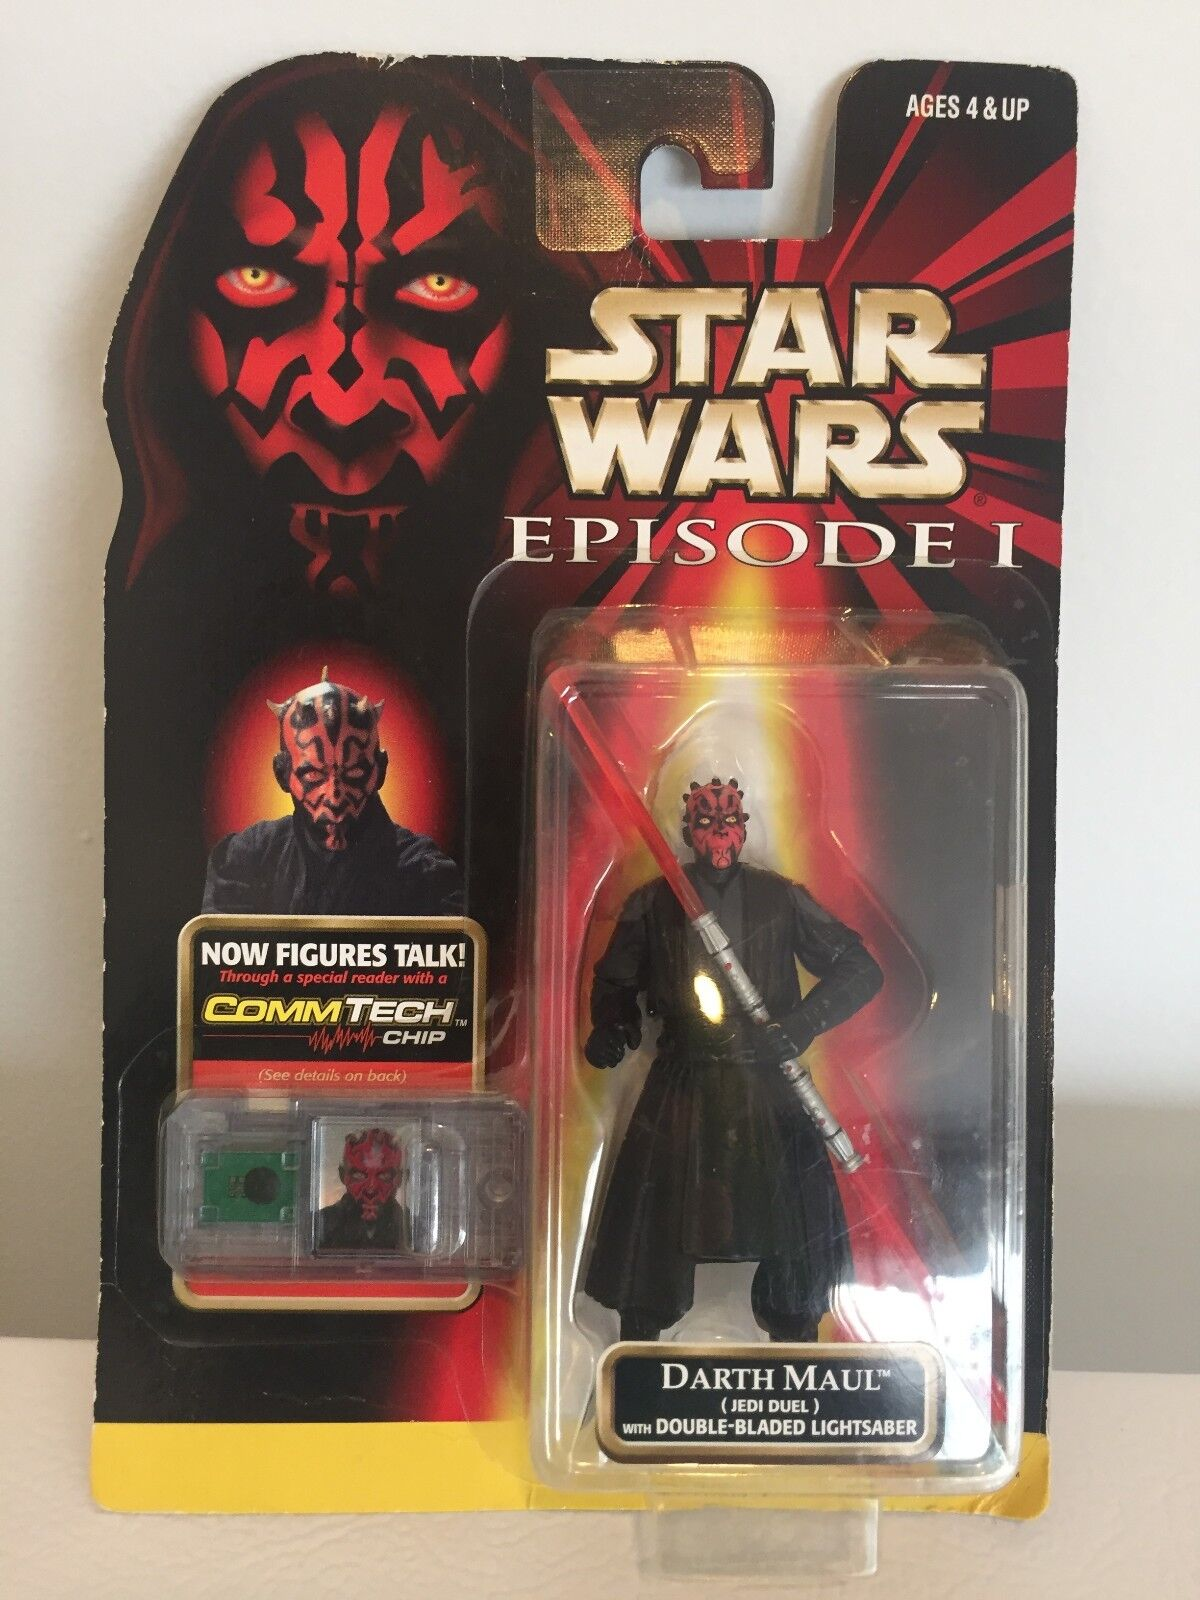 NEW Darth Maul Jedi Duel with Double-Bladed Lightsaber Action Figure Episode 1